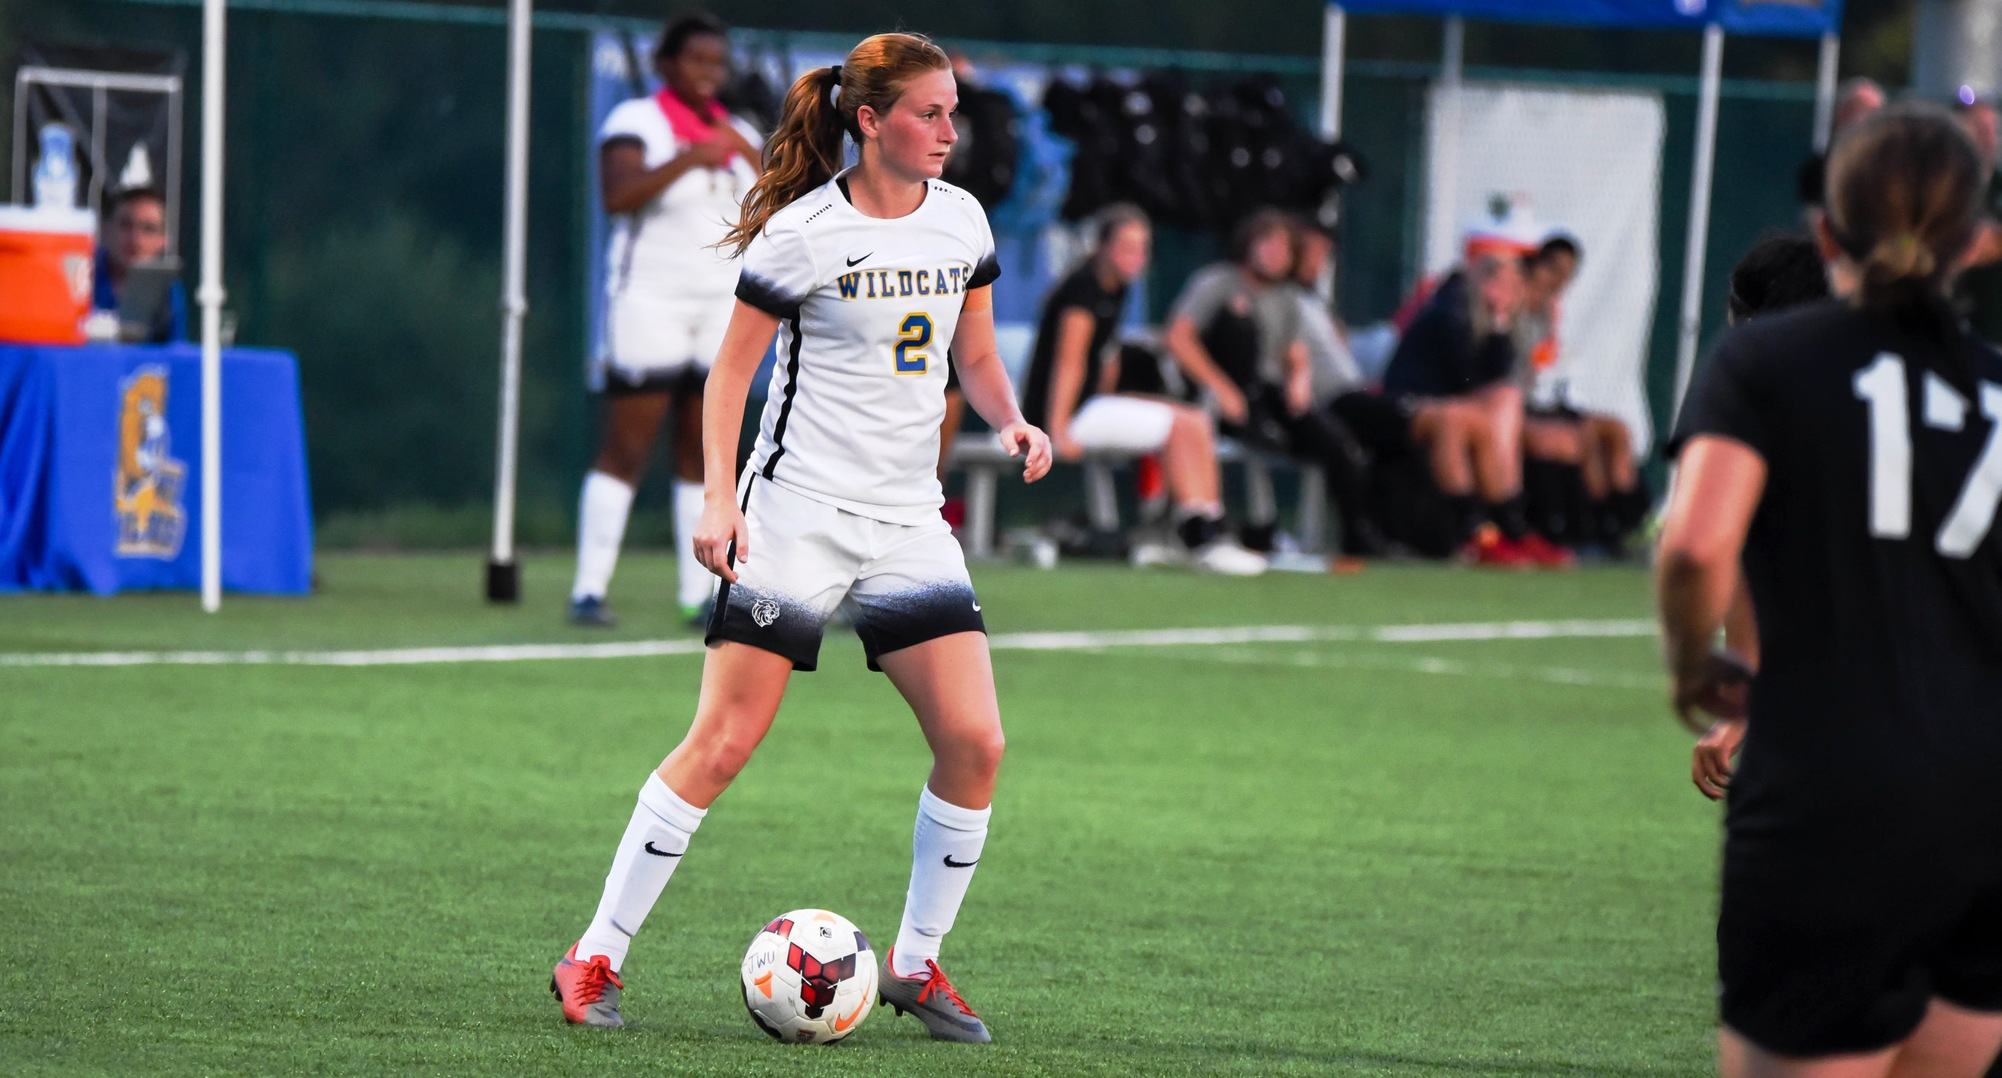 Doyle's Five-Star Performance Leads Women's Soccer Past Lancers